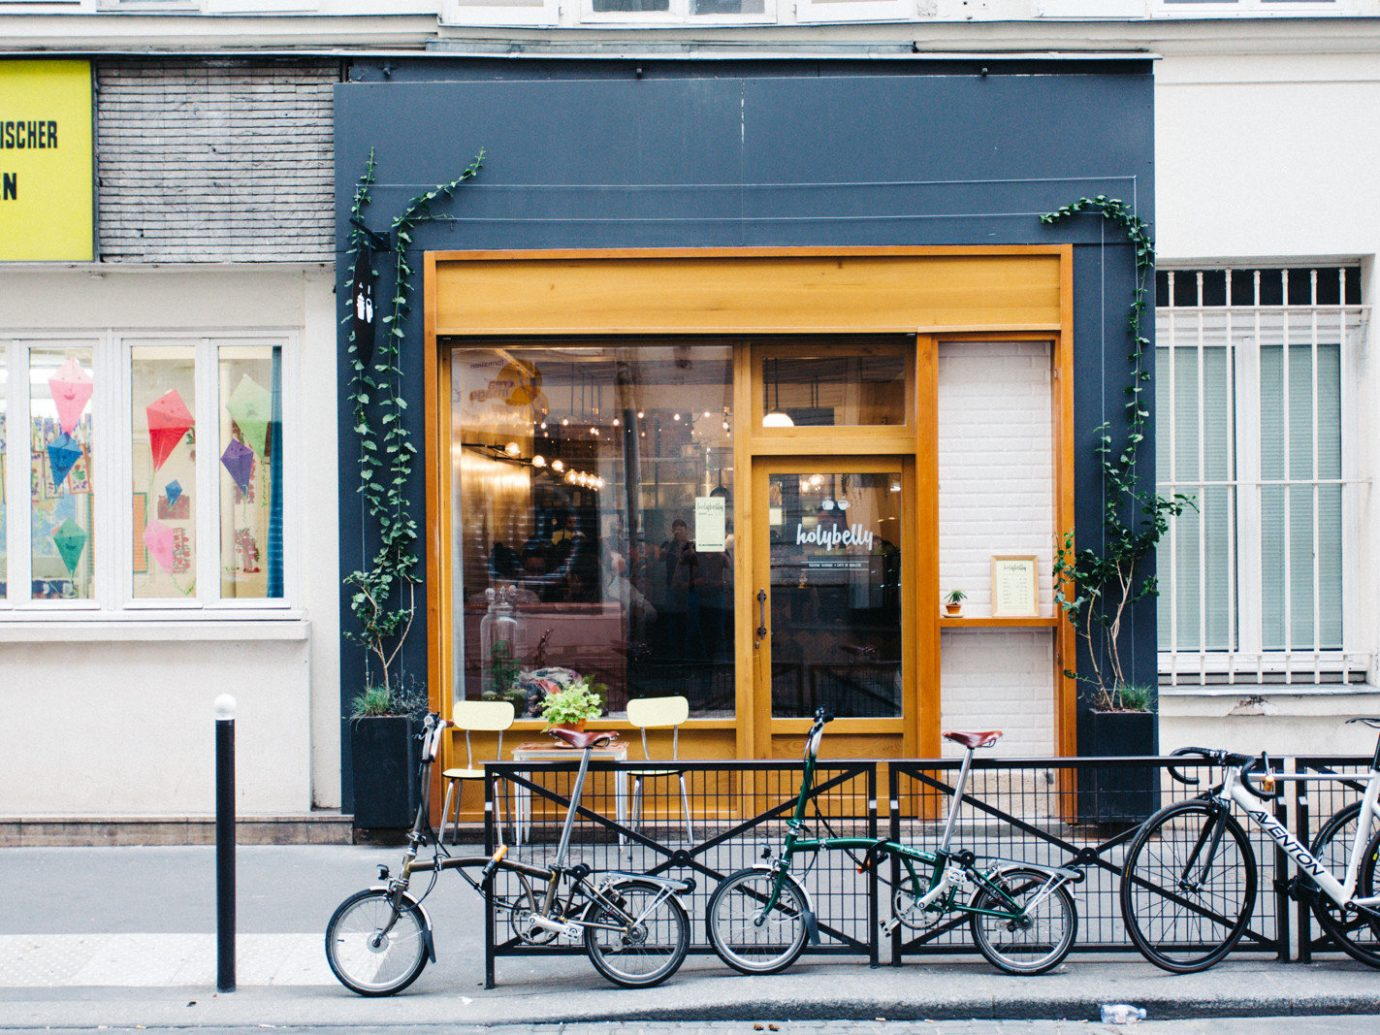 Food + Drink outdoor bicycle building color parked yellow street sidewalk vehicle facade window interior design window covering porch cart